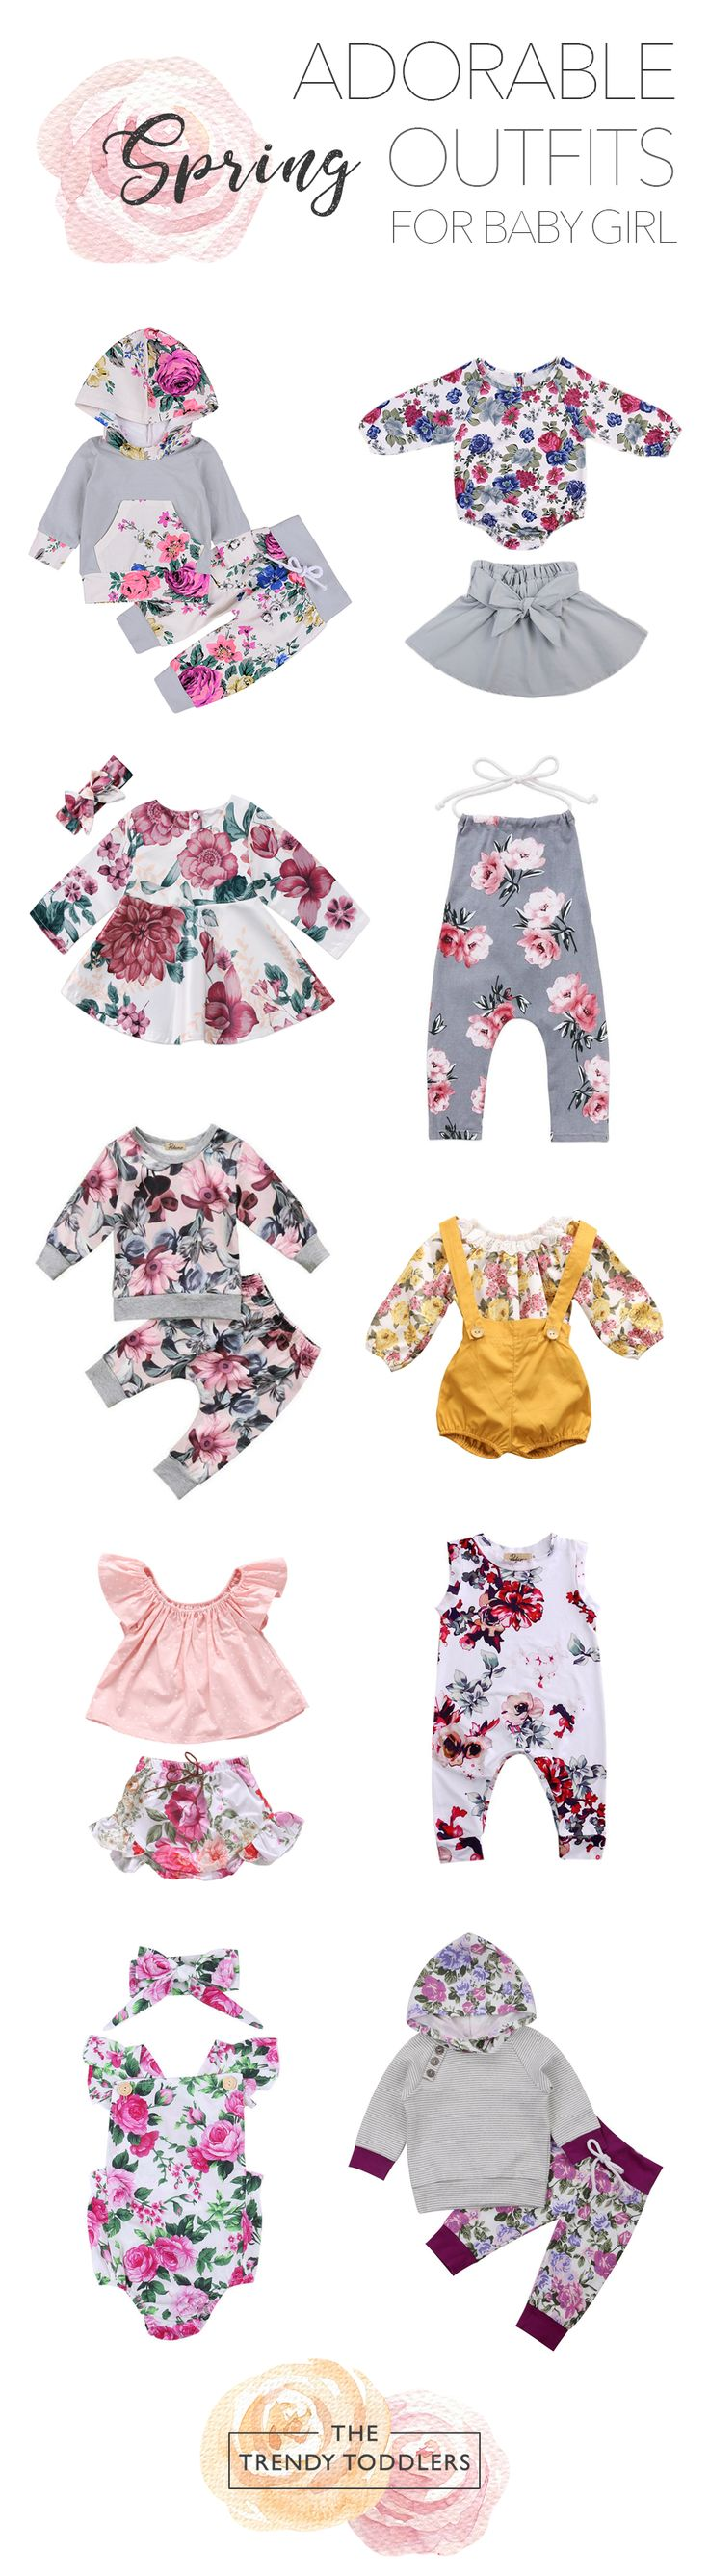 UP TO 70% OFF + FREE SHIPPING! Shop our entire collection of cute baby & toddler girl spring outfits at thetrendytoddlers.com.